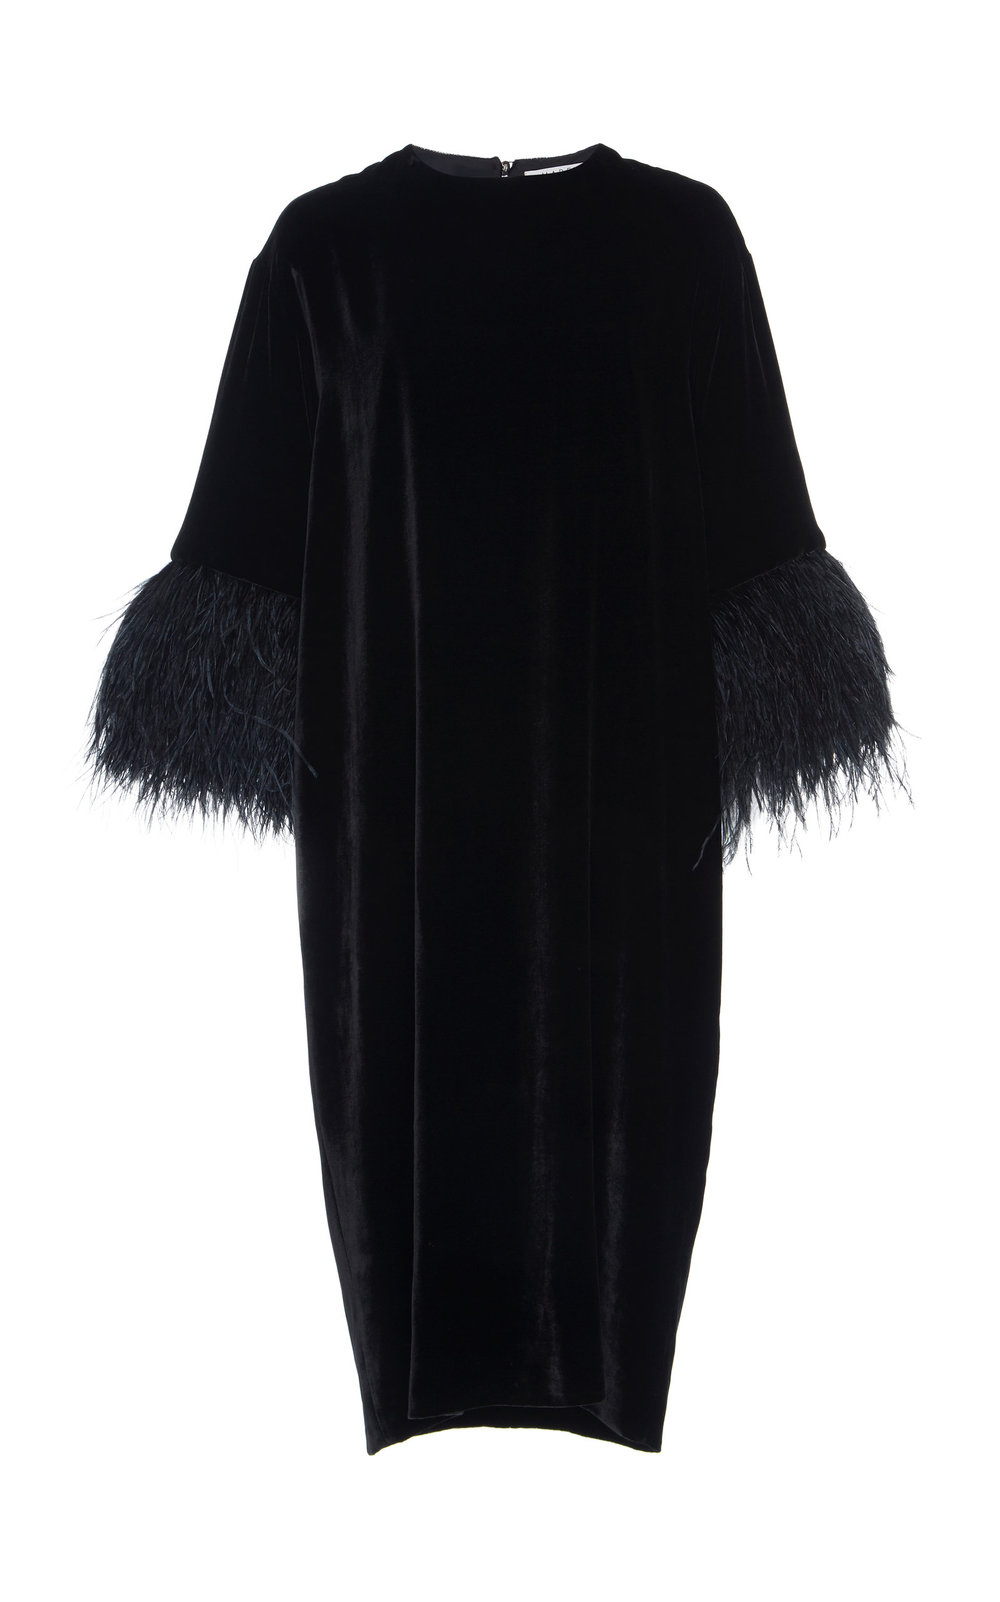 Nigella Silk Velvet Dress - BLACK  Hitting just below the knee, this Silk Velvet dress features a relaxed fit and crew neckline. The minimalistic design is refined by dropped shoulders and fur trimmed cropped sleeves.  Wear yours with a tone-on-tone belt to define the waistline.